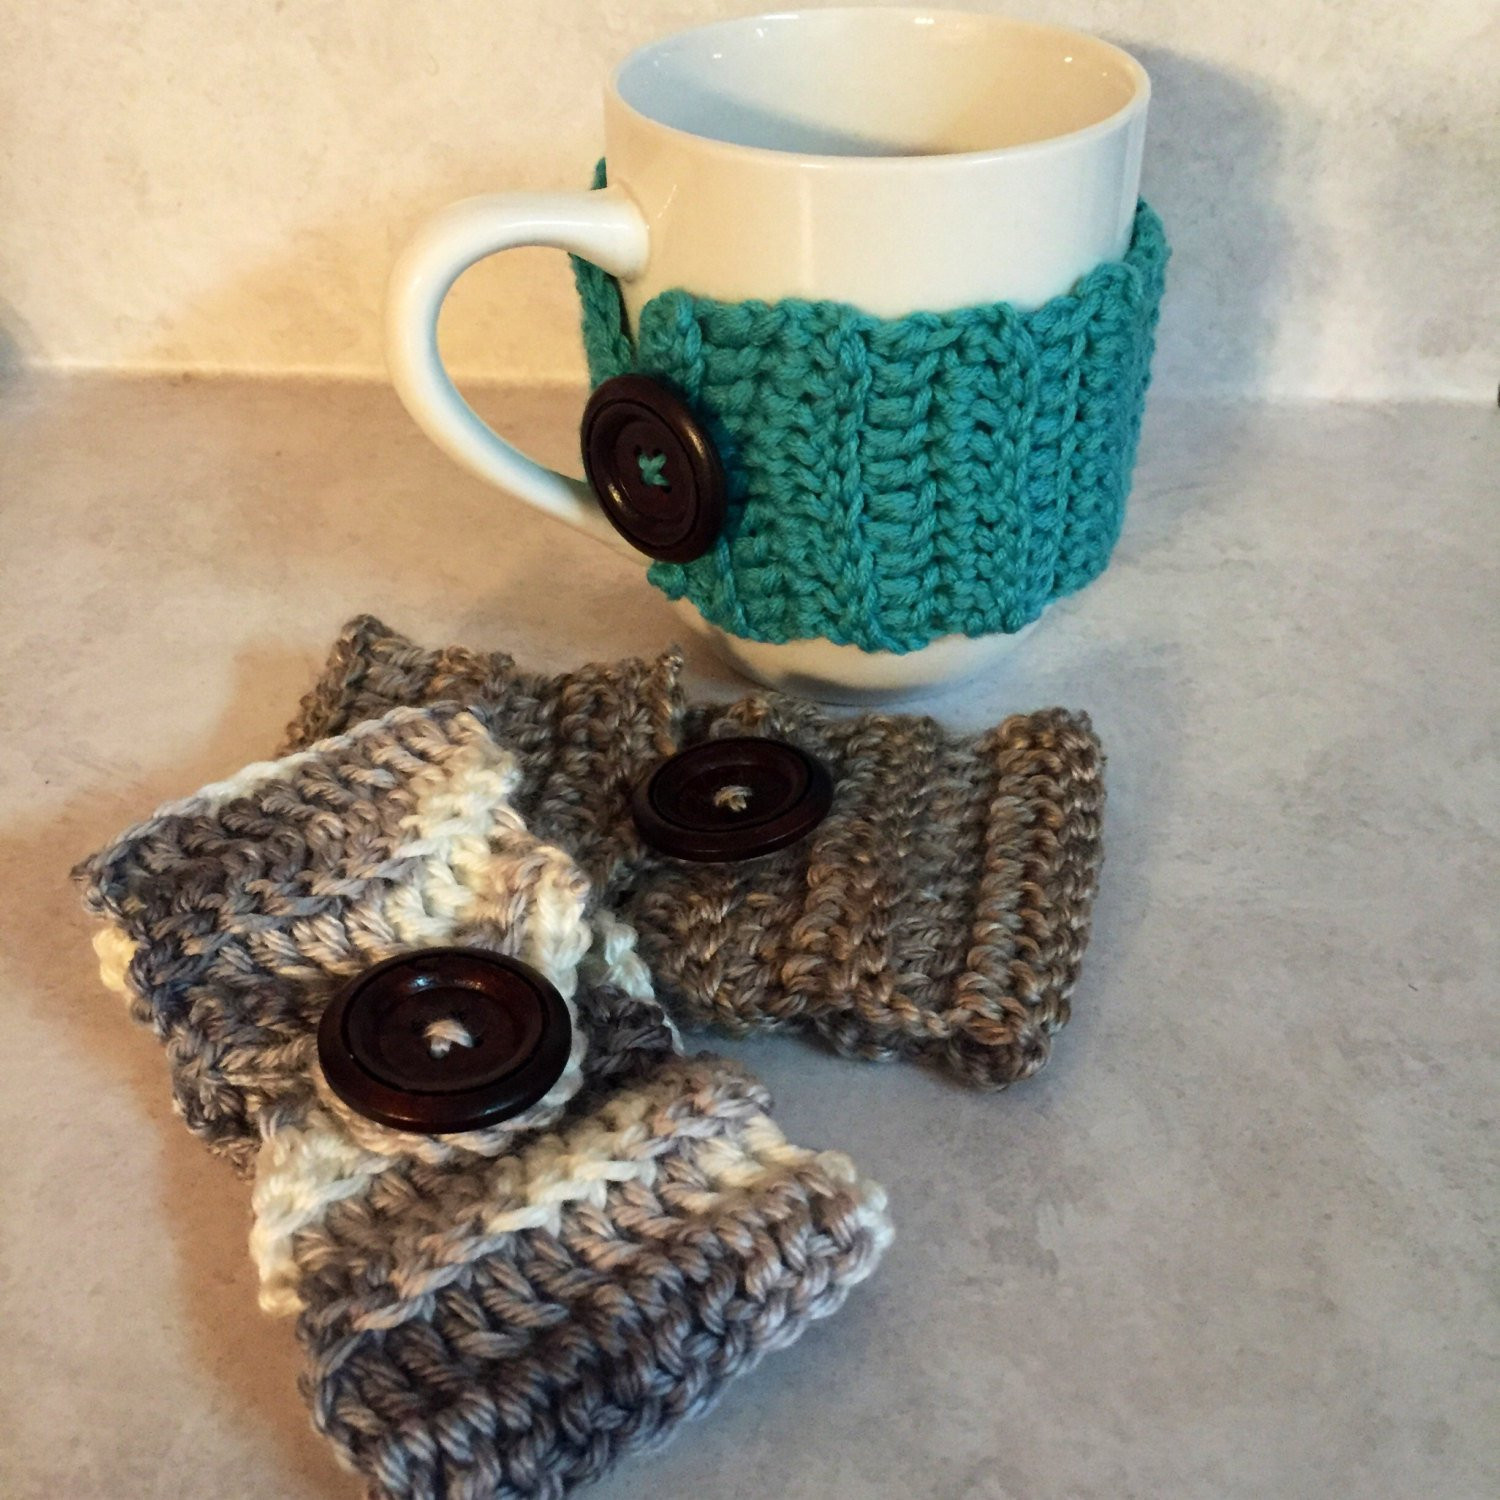 Crochet Coffee Cup Cozy New Crochet Tea Cozy Coffee Cup Sleeve Coffee Sleeve Mug Cozy Of Crochet Coffee Cup Cozy Elegant Wooftastic Puppy Crochet Coffee Cozy